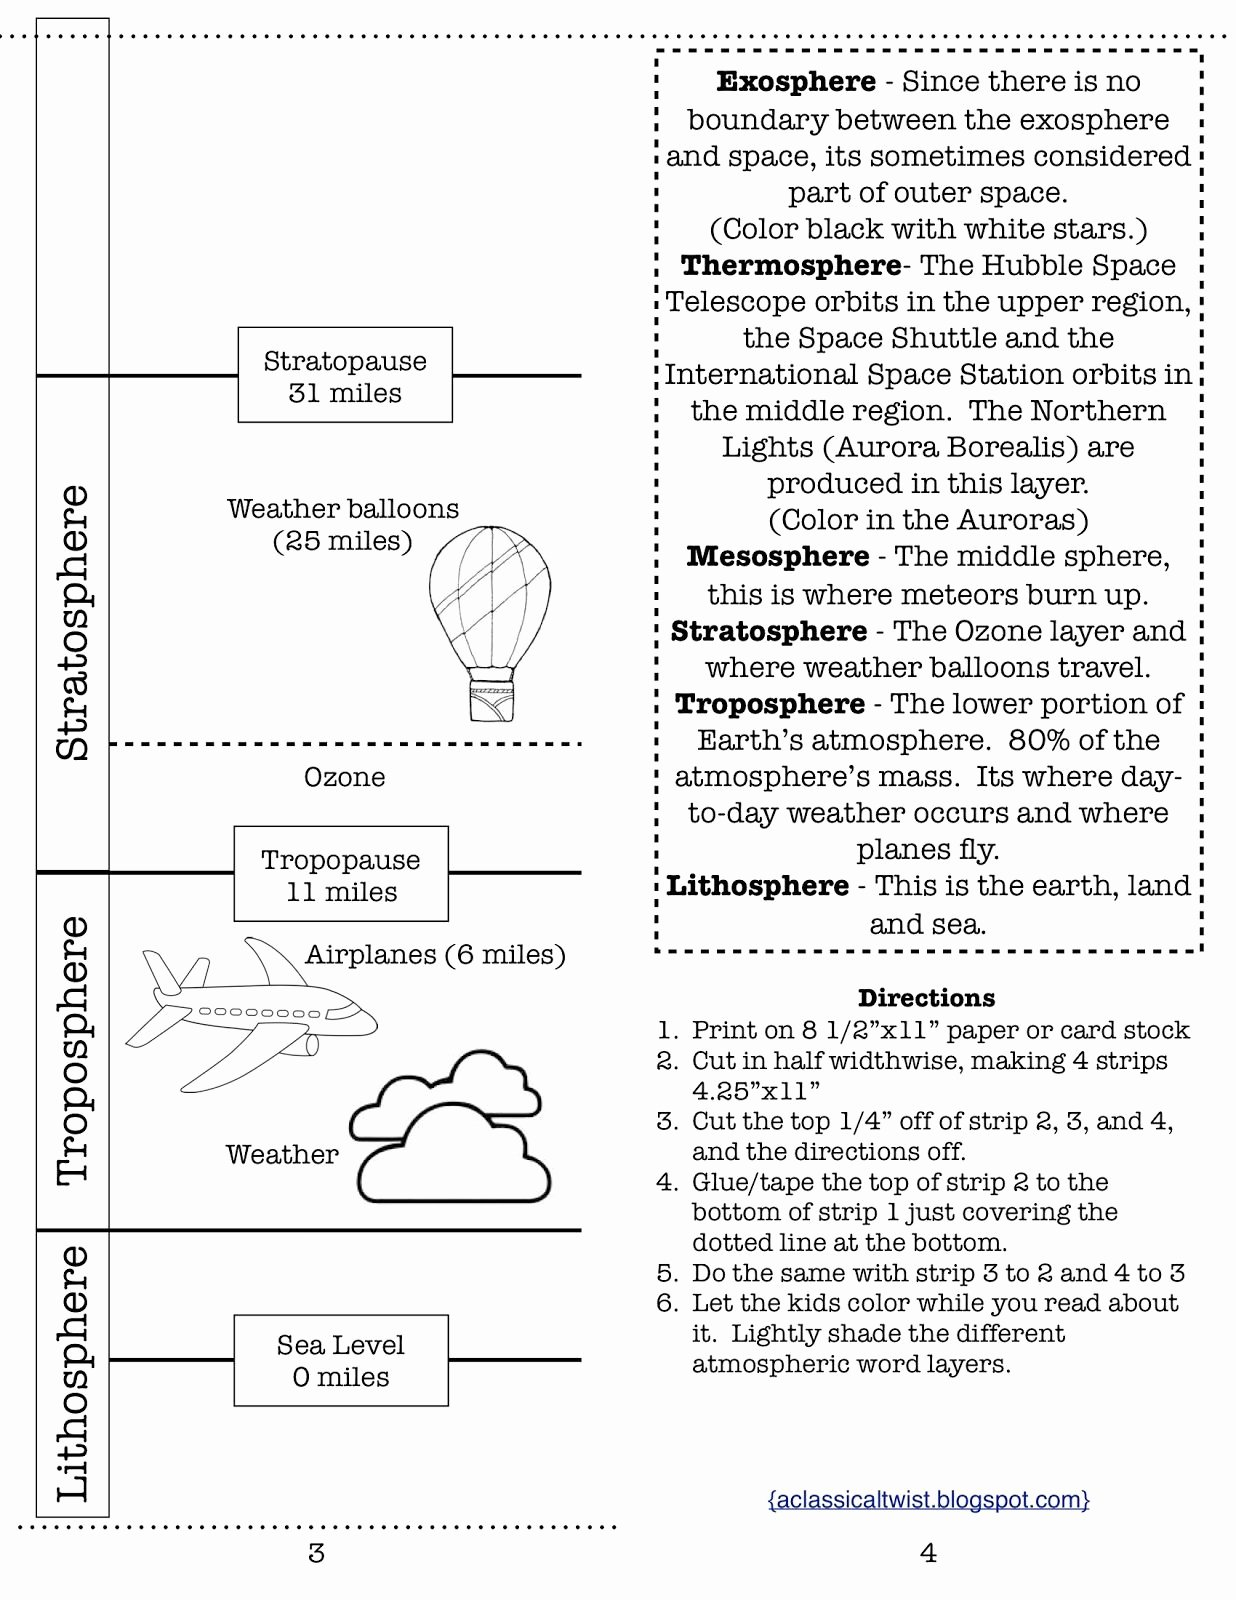 Layers Of the atmosphere Worksheet Luxury Homeschooling with A Classical Twist Earth S atmosphere